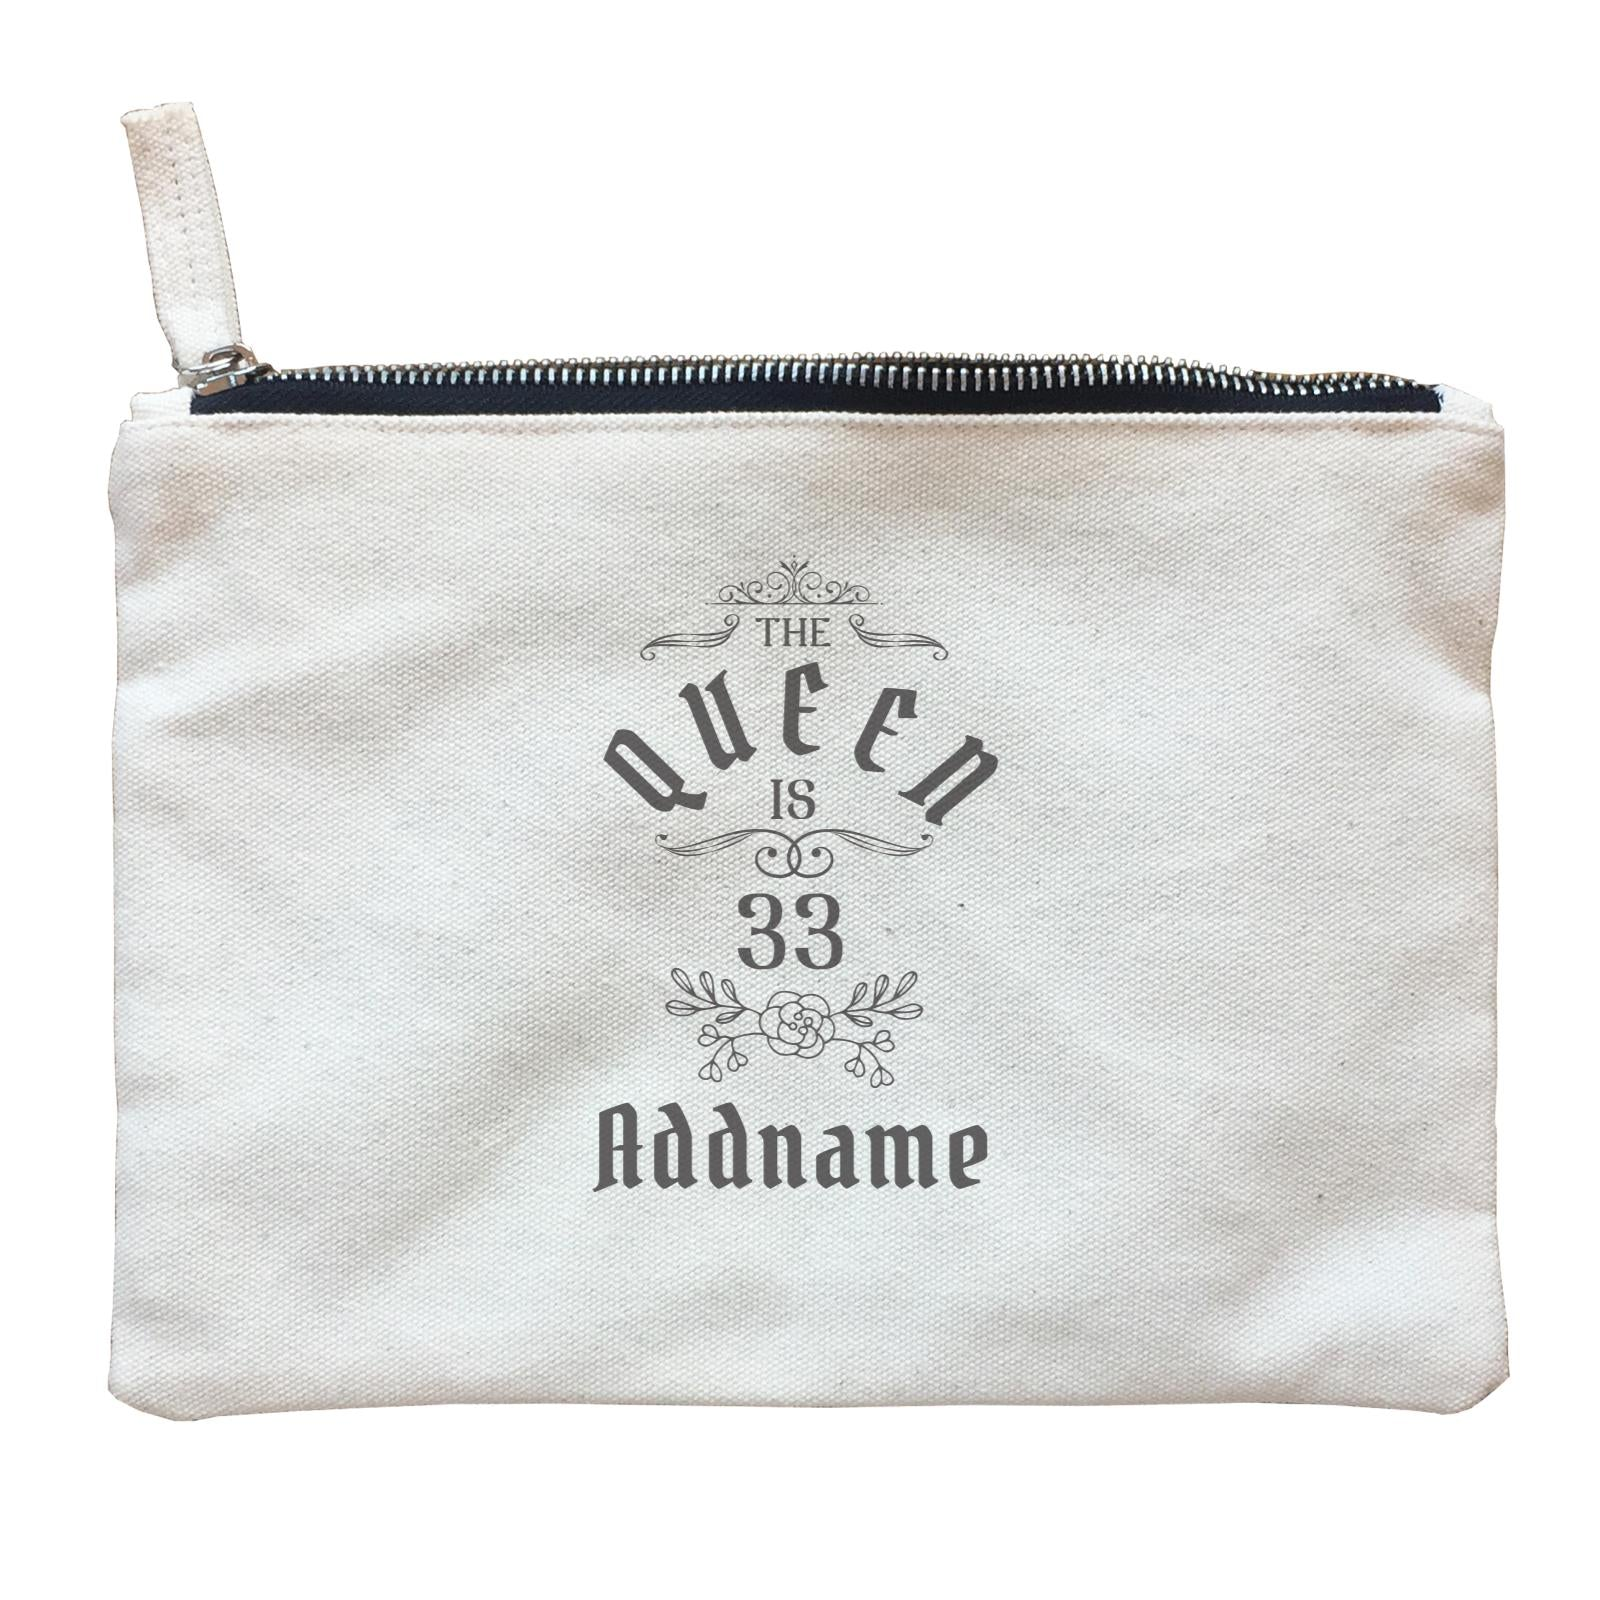 Personalize It Birthyear The Queen with Addname and Add Year Zipper Pouch